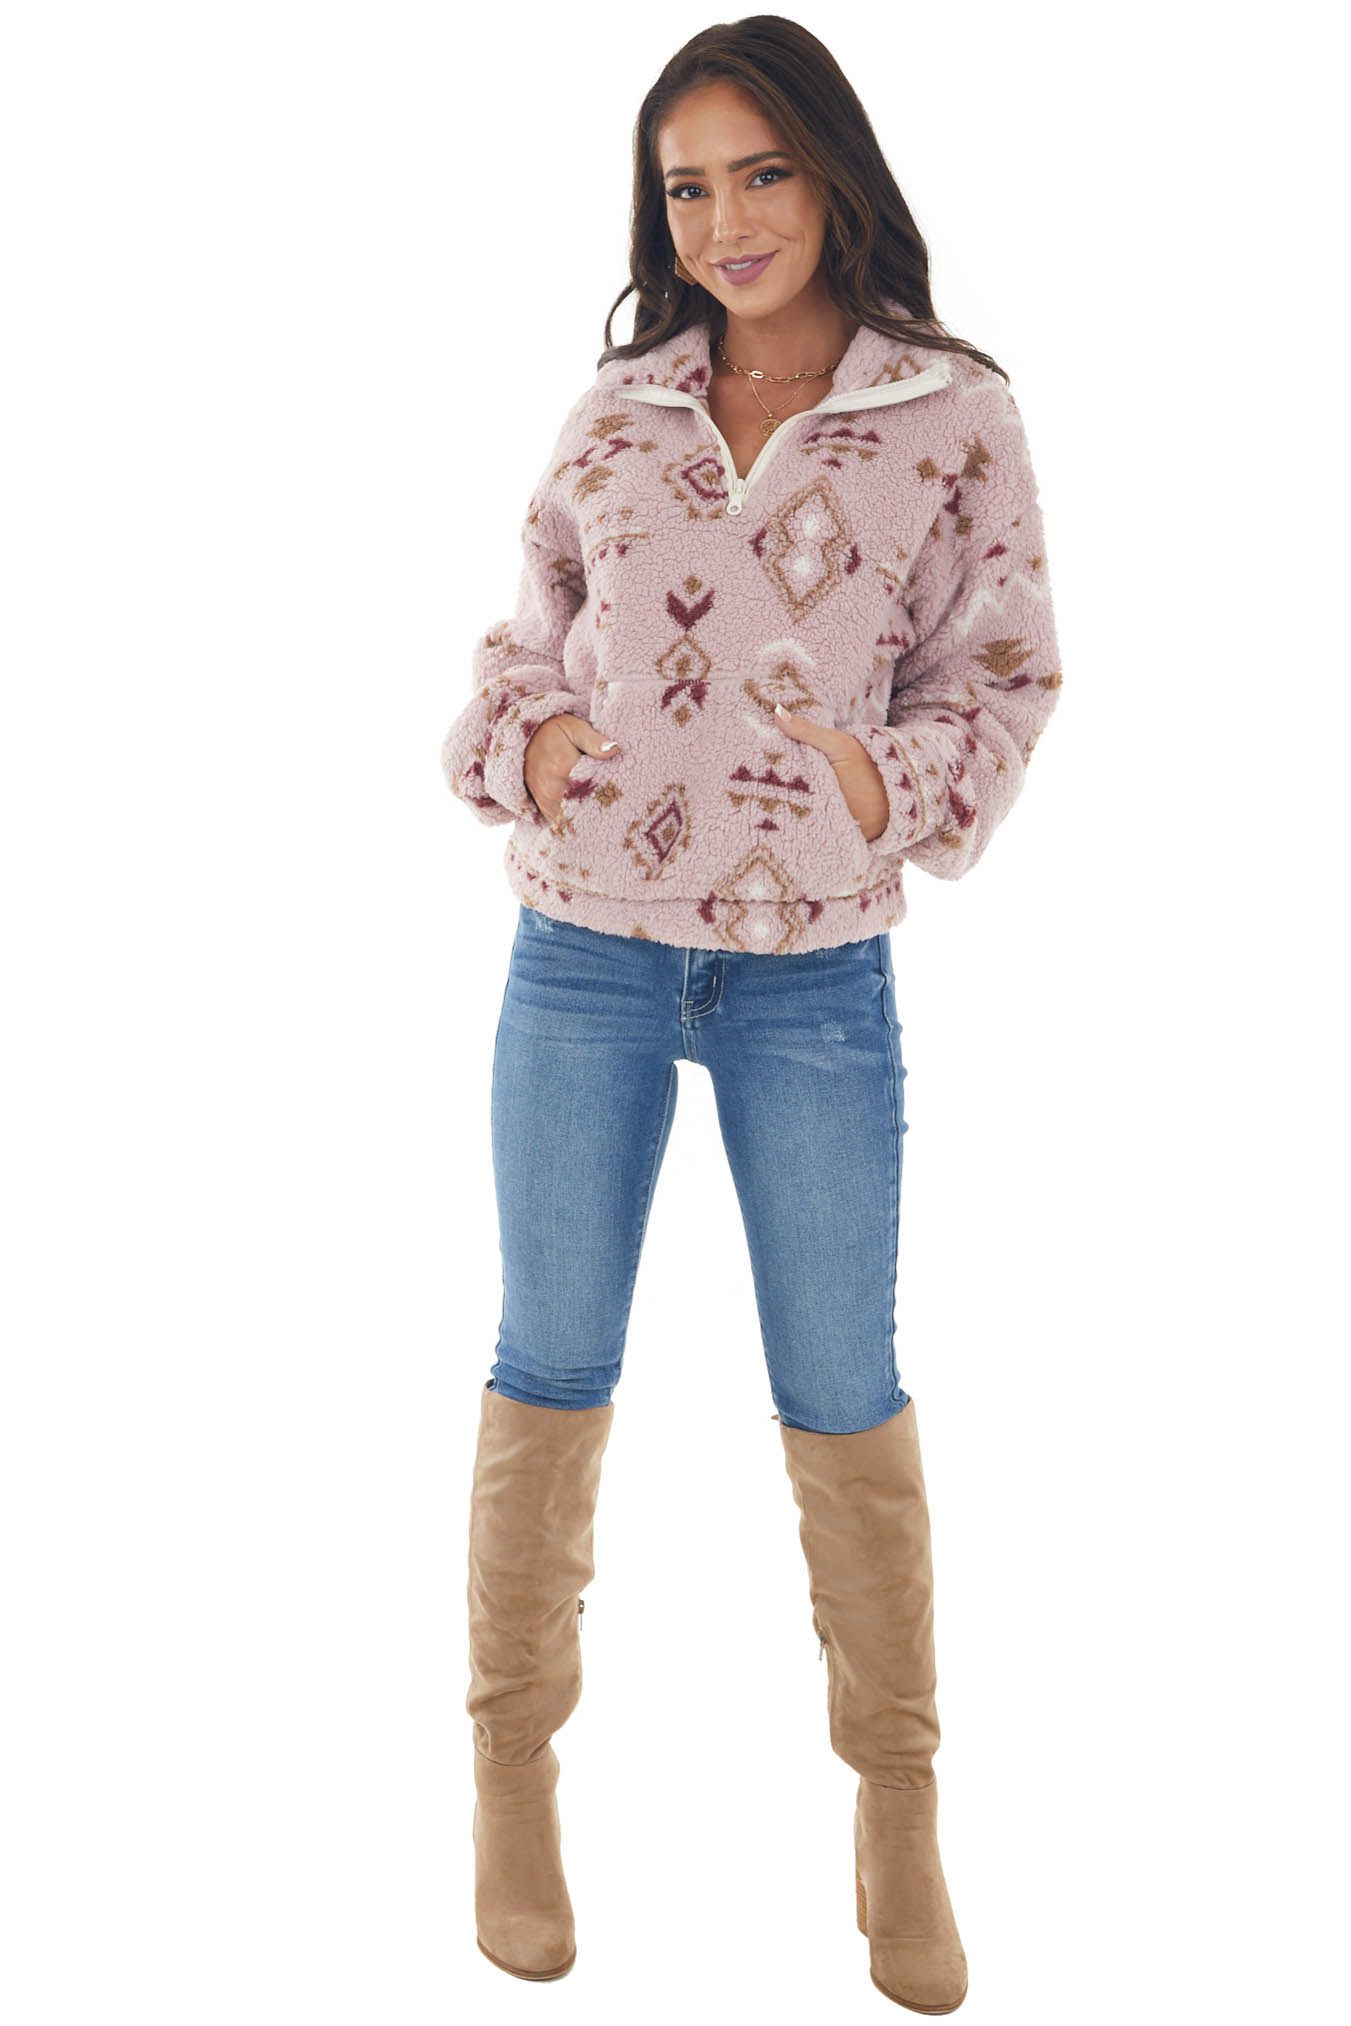 Carnation Aztec Print Sherpa Pull Over Jacket